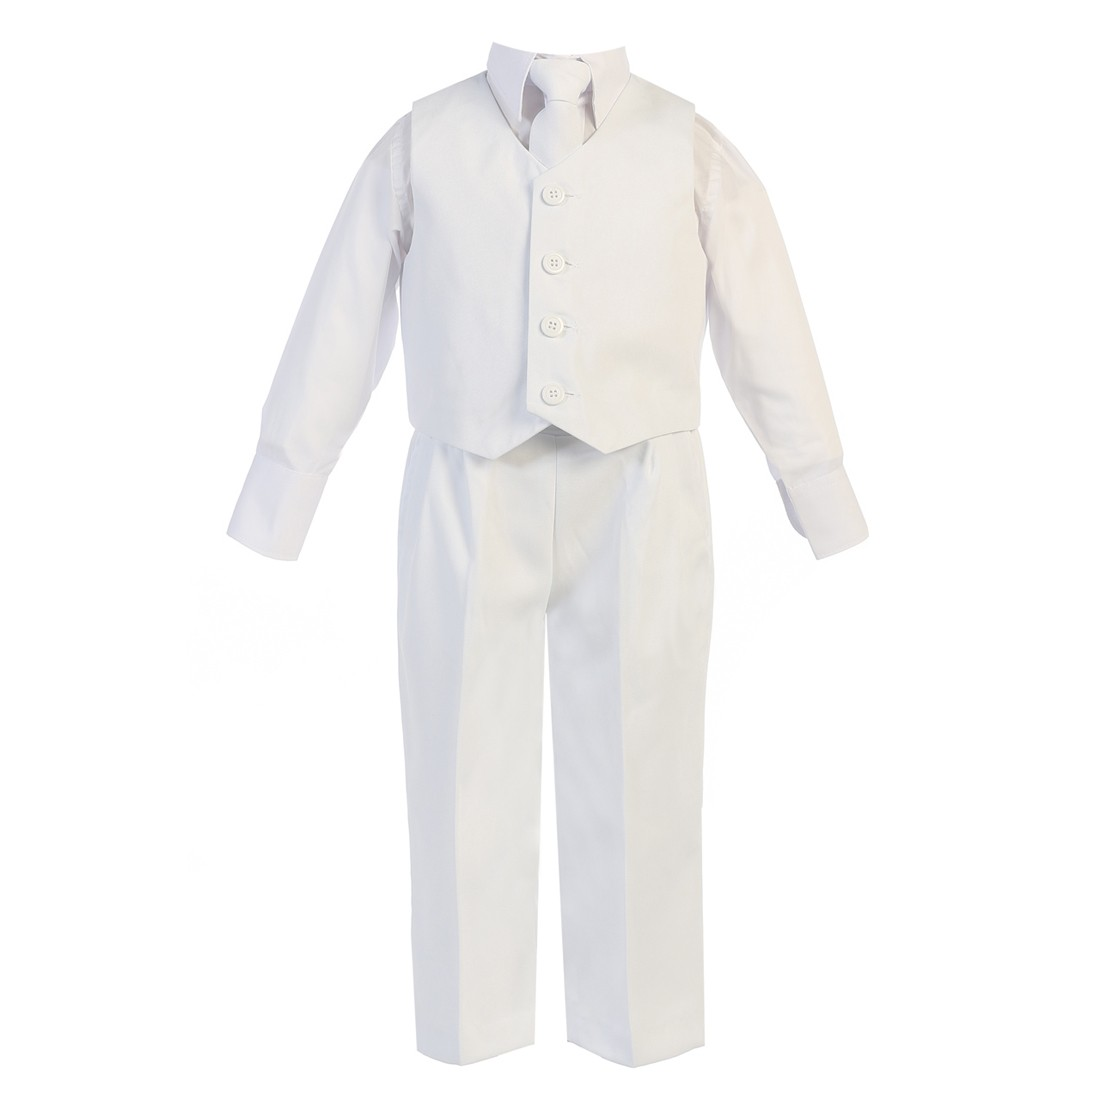 ce853c331720 Lito Baby Boys White Vest Pants Special Occasion Easter Outfit Set 6-24M - Sophia's  Style